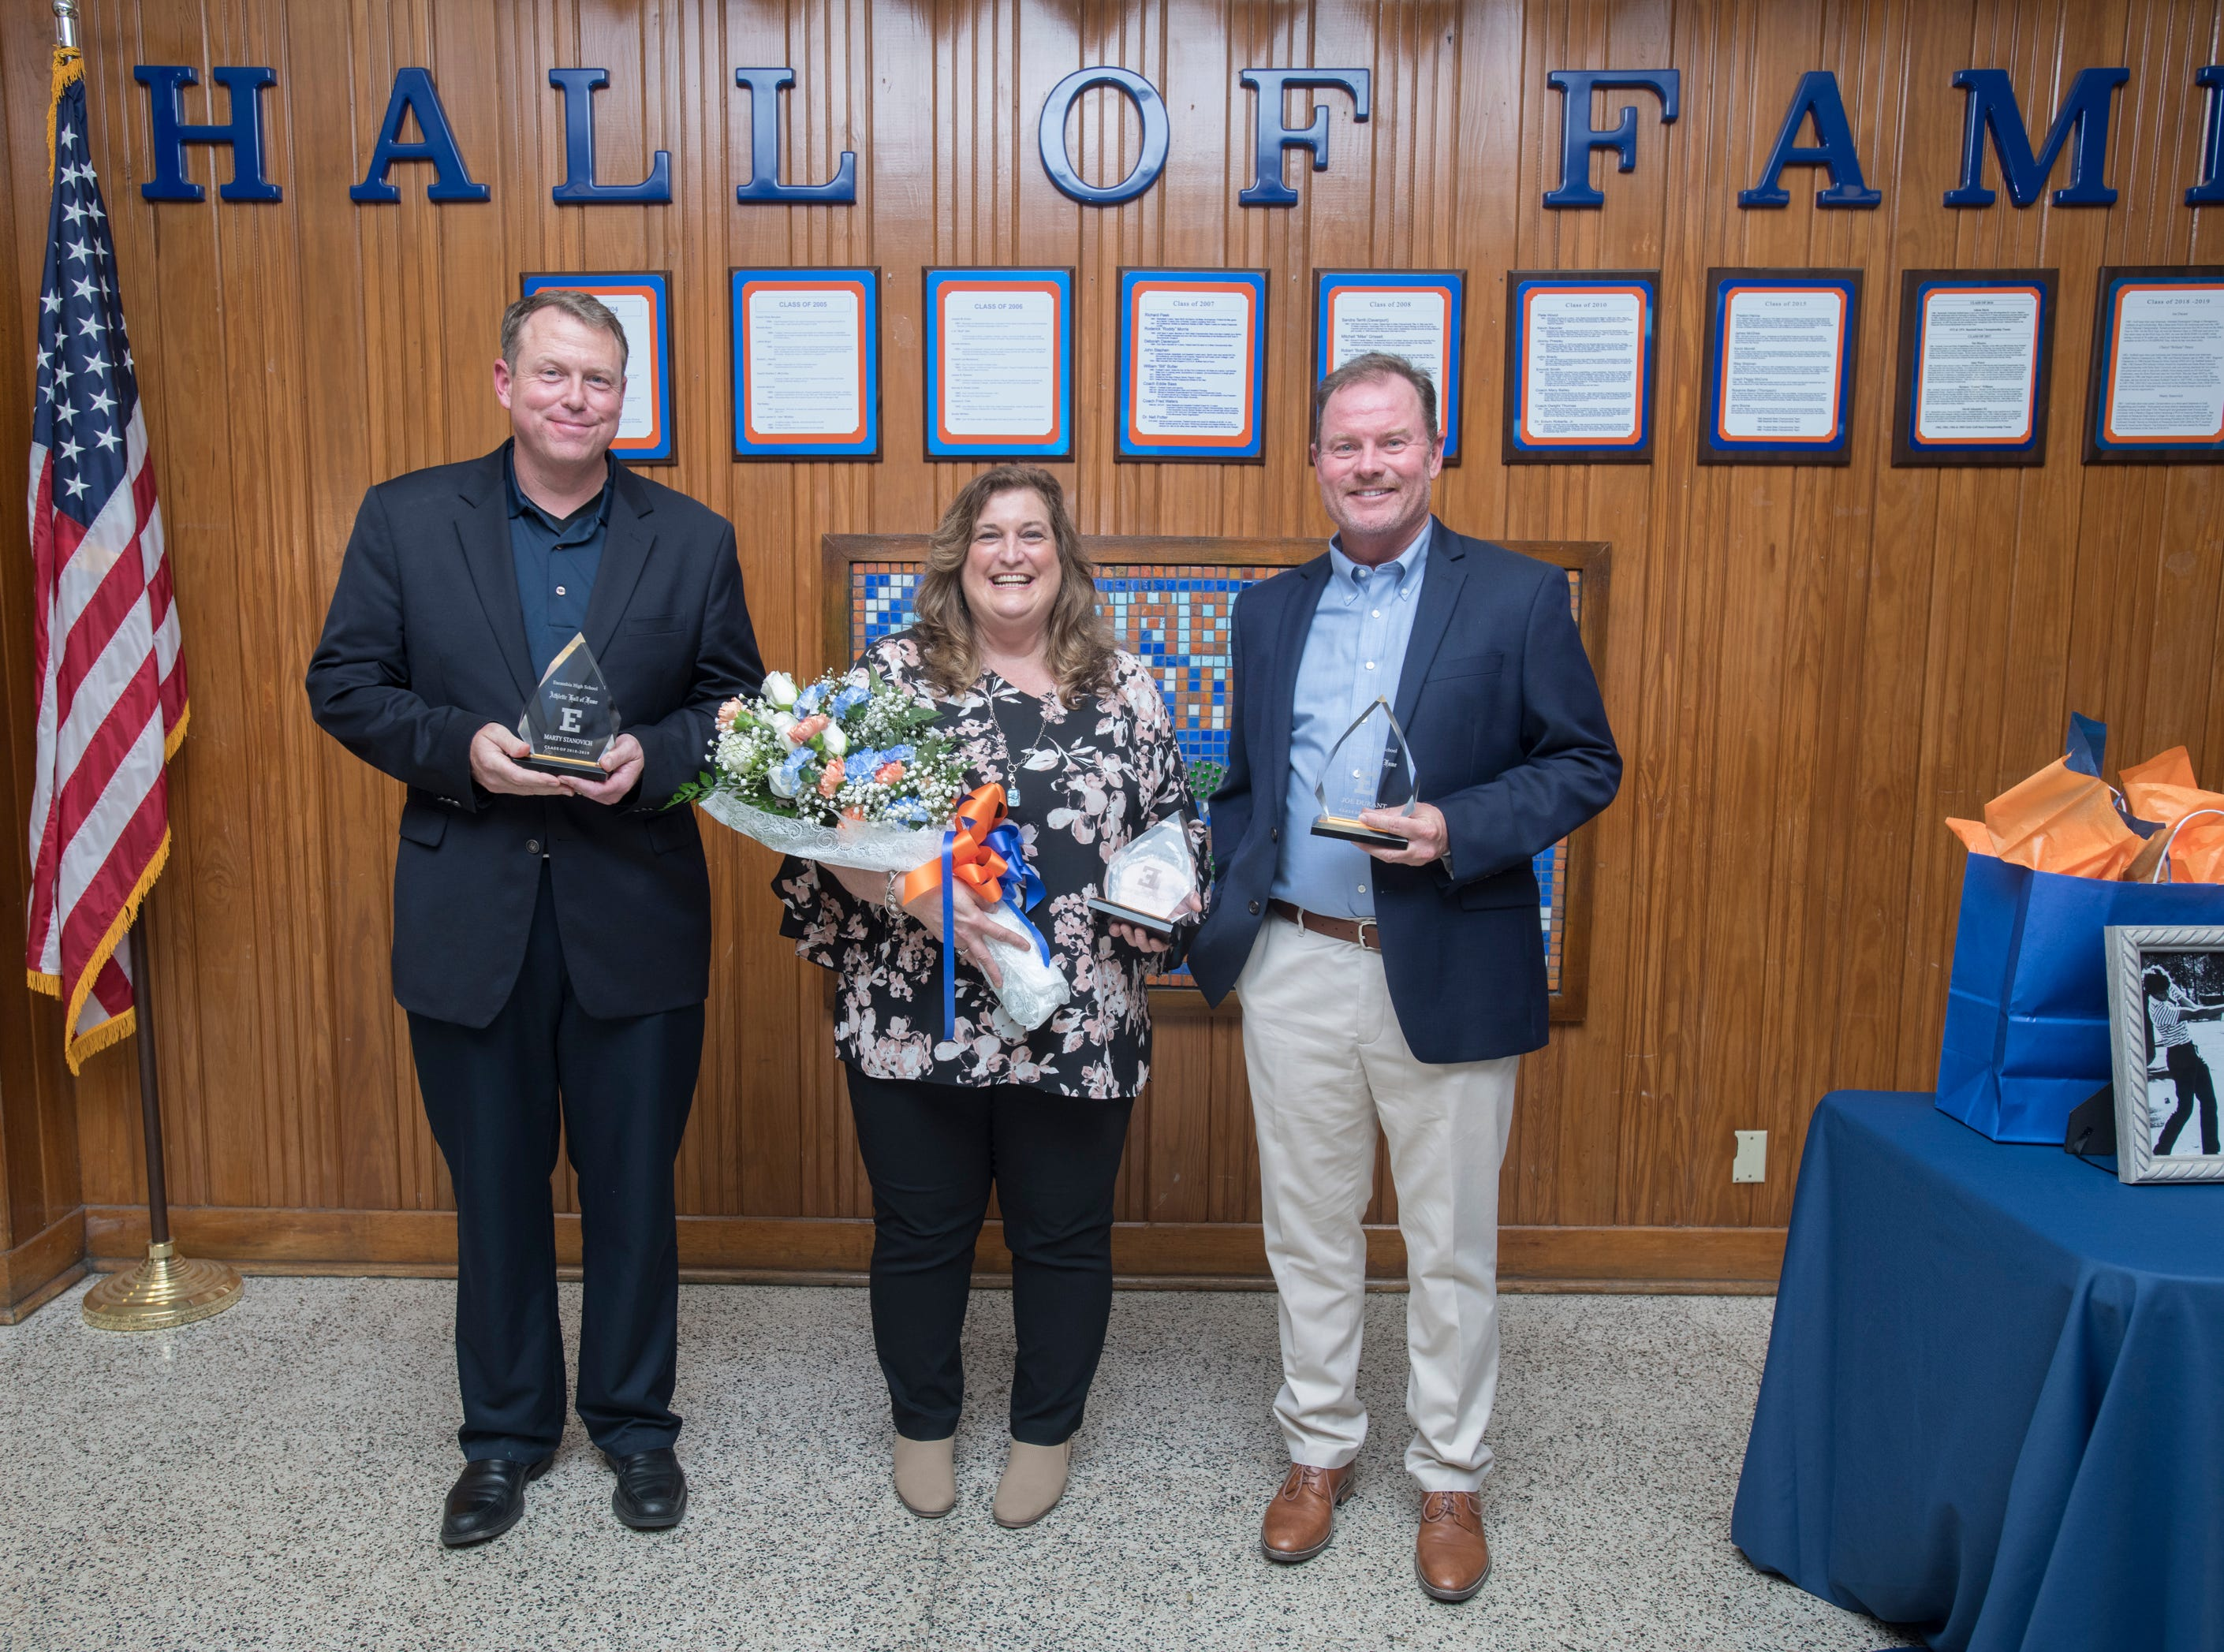 Hall of Fame class of 2018-2019 inductees Marty Stanovich, from left, Cheryl Peters, and Joe Durant  pose at Escambia High School in Pensacola on March 14, 2019.